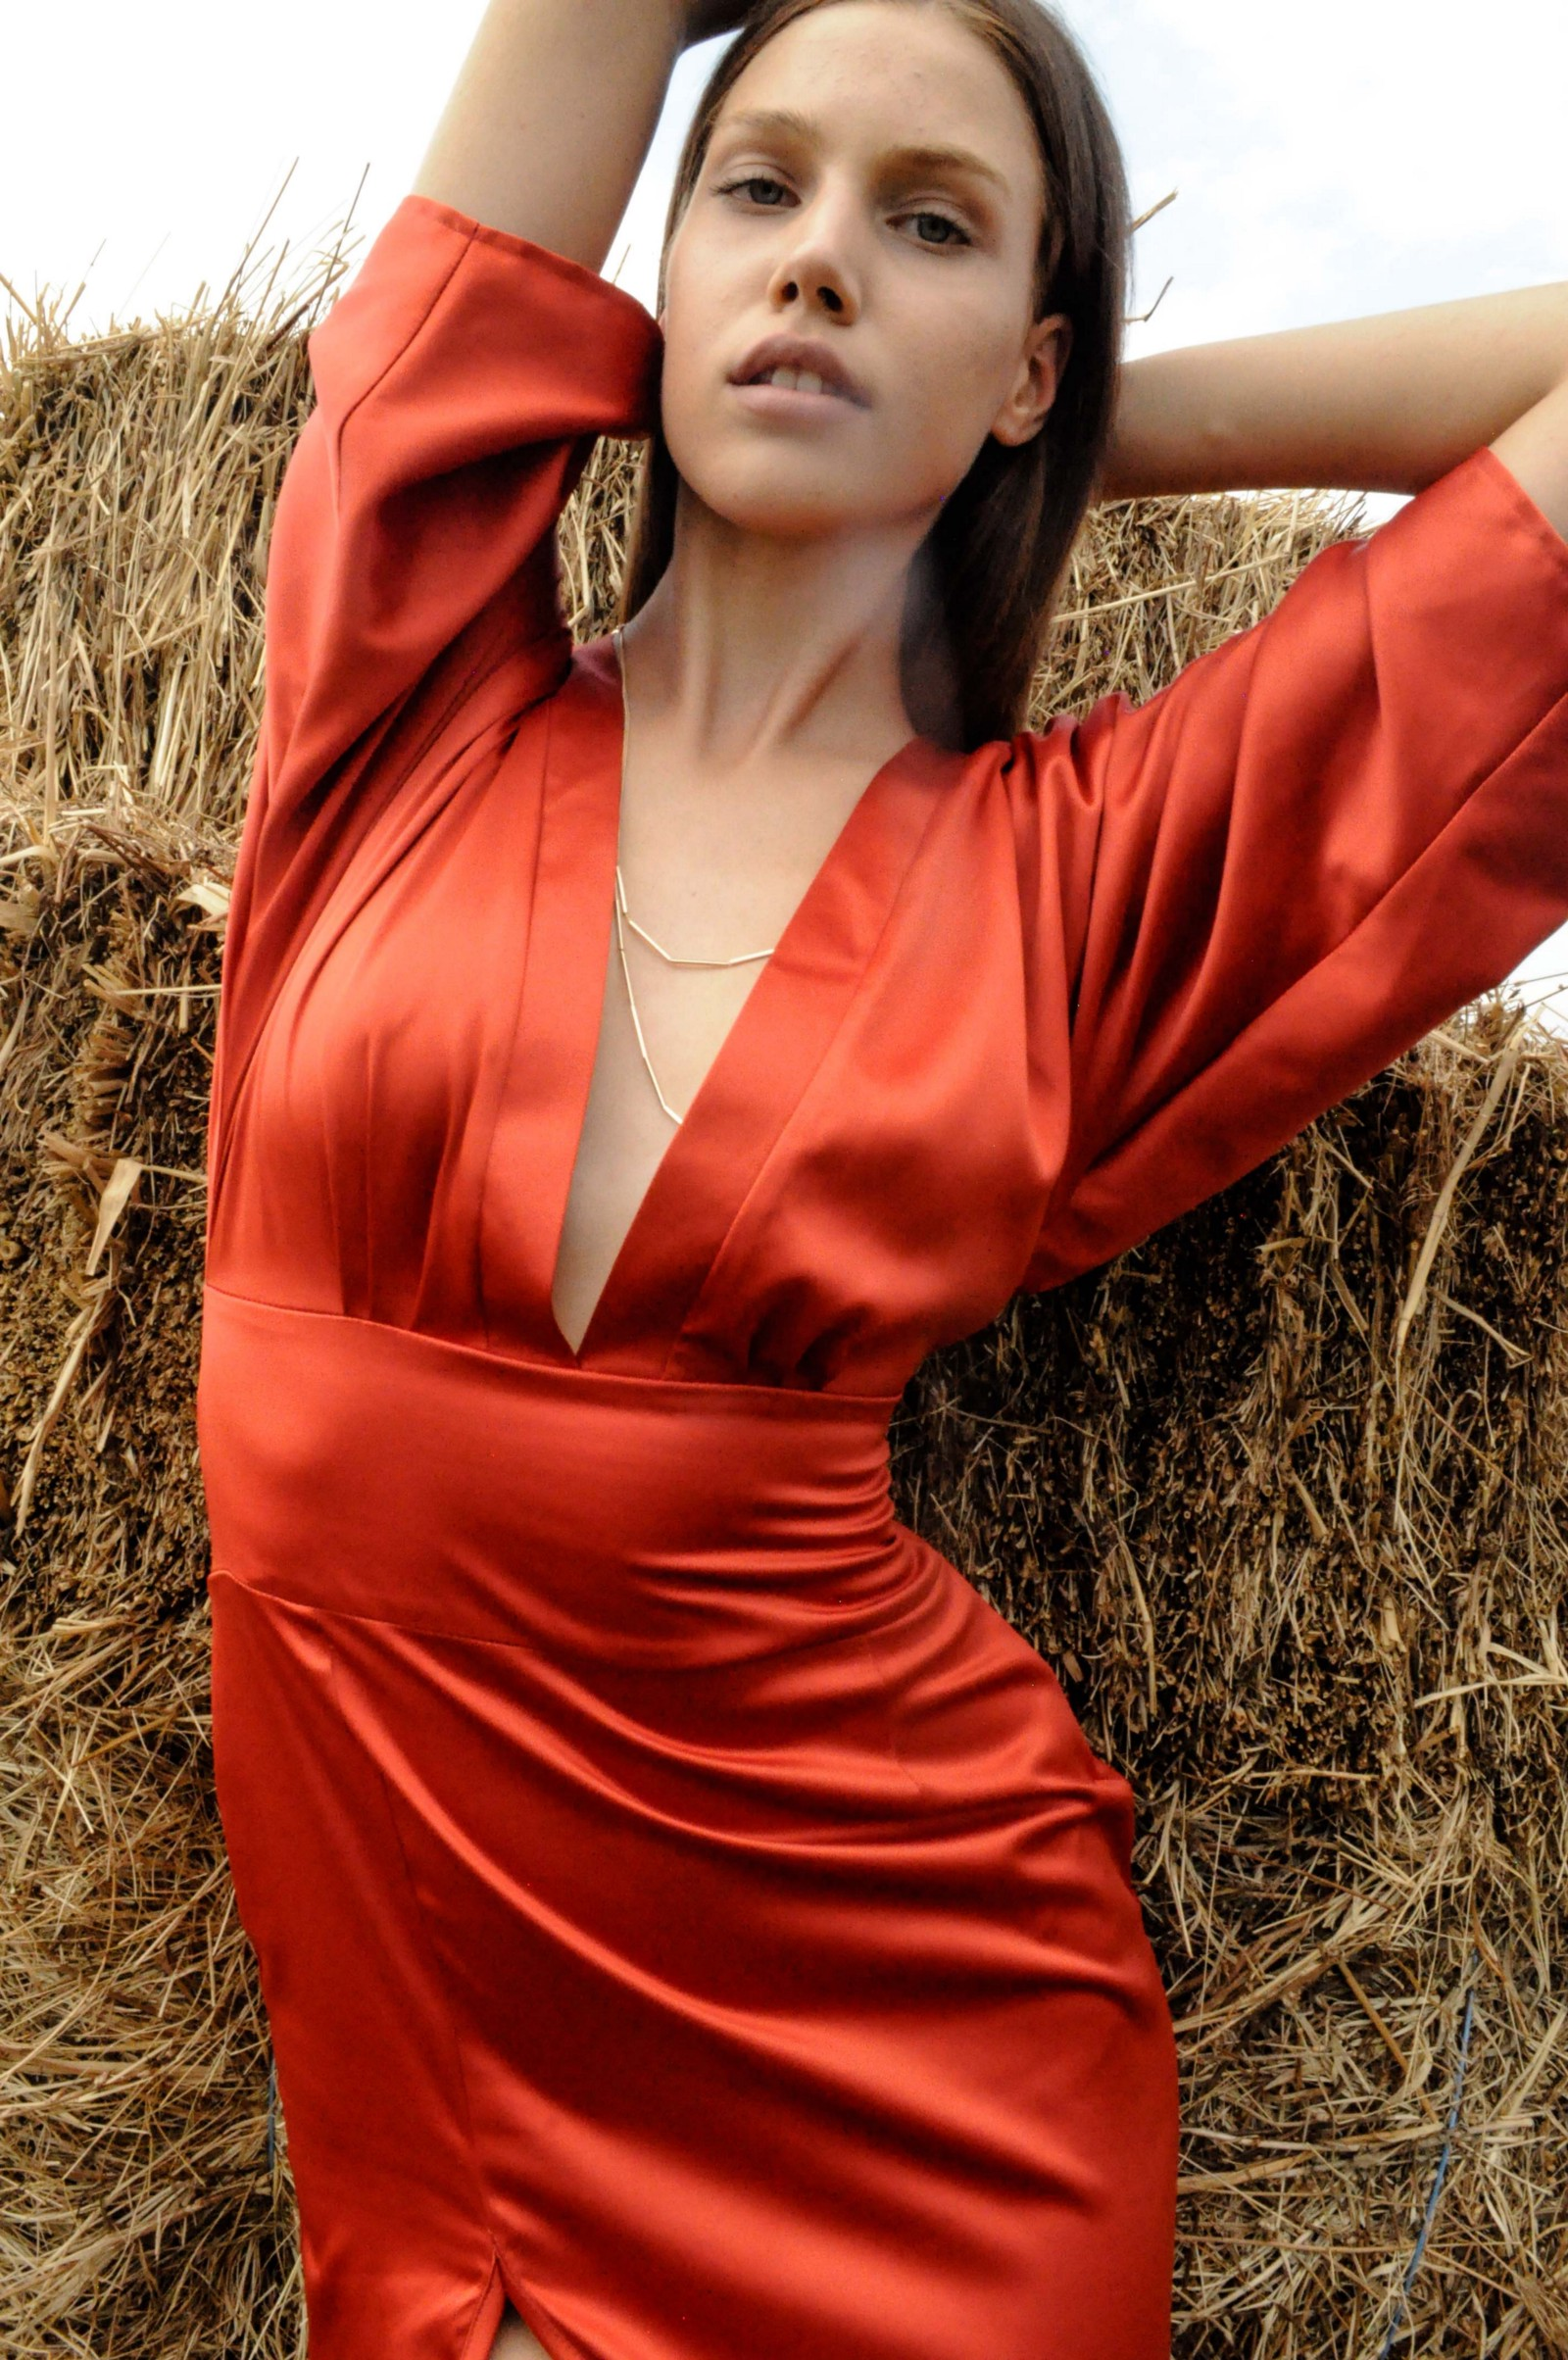 The model is wearing The Terra Cotta Maxi Dress